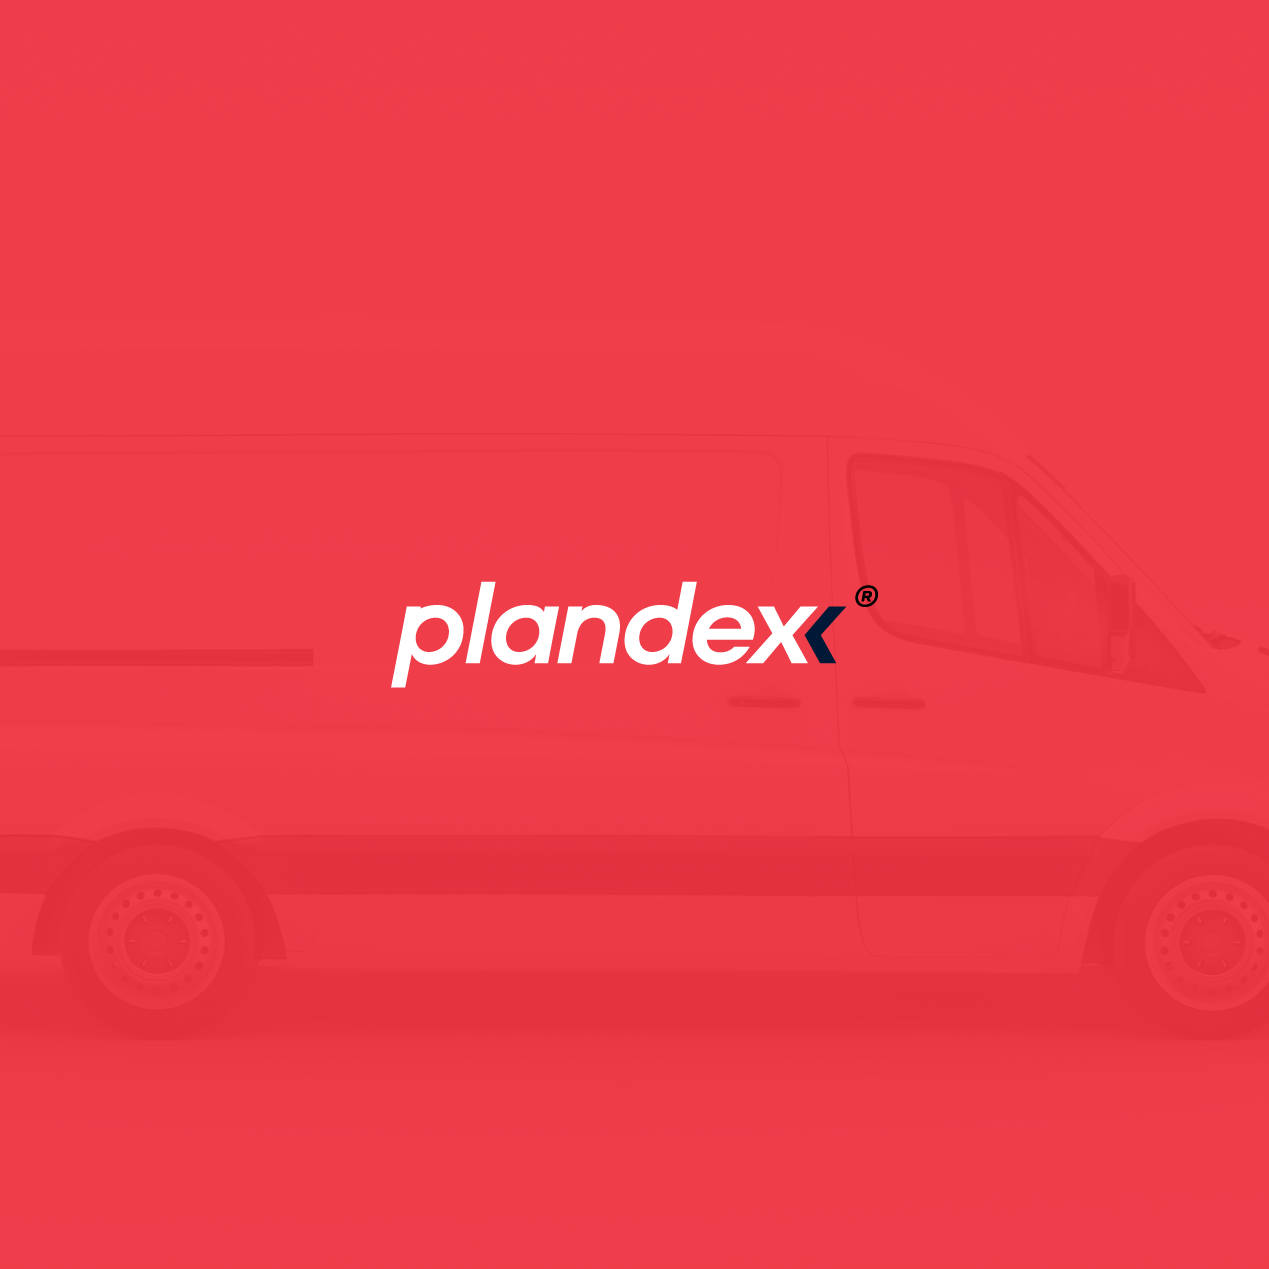 plandek logo re-branding project